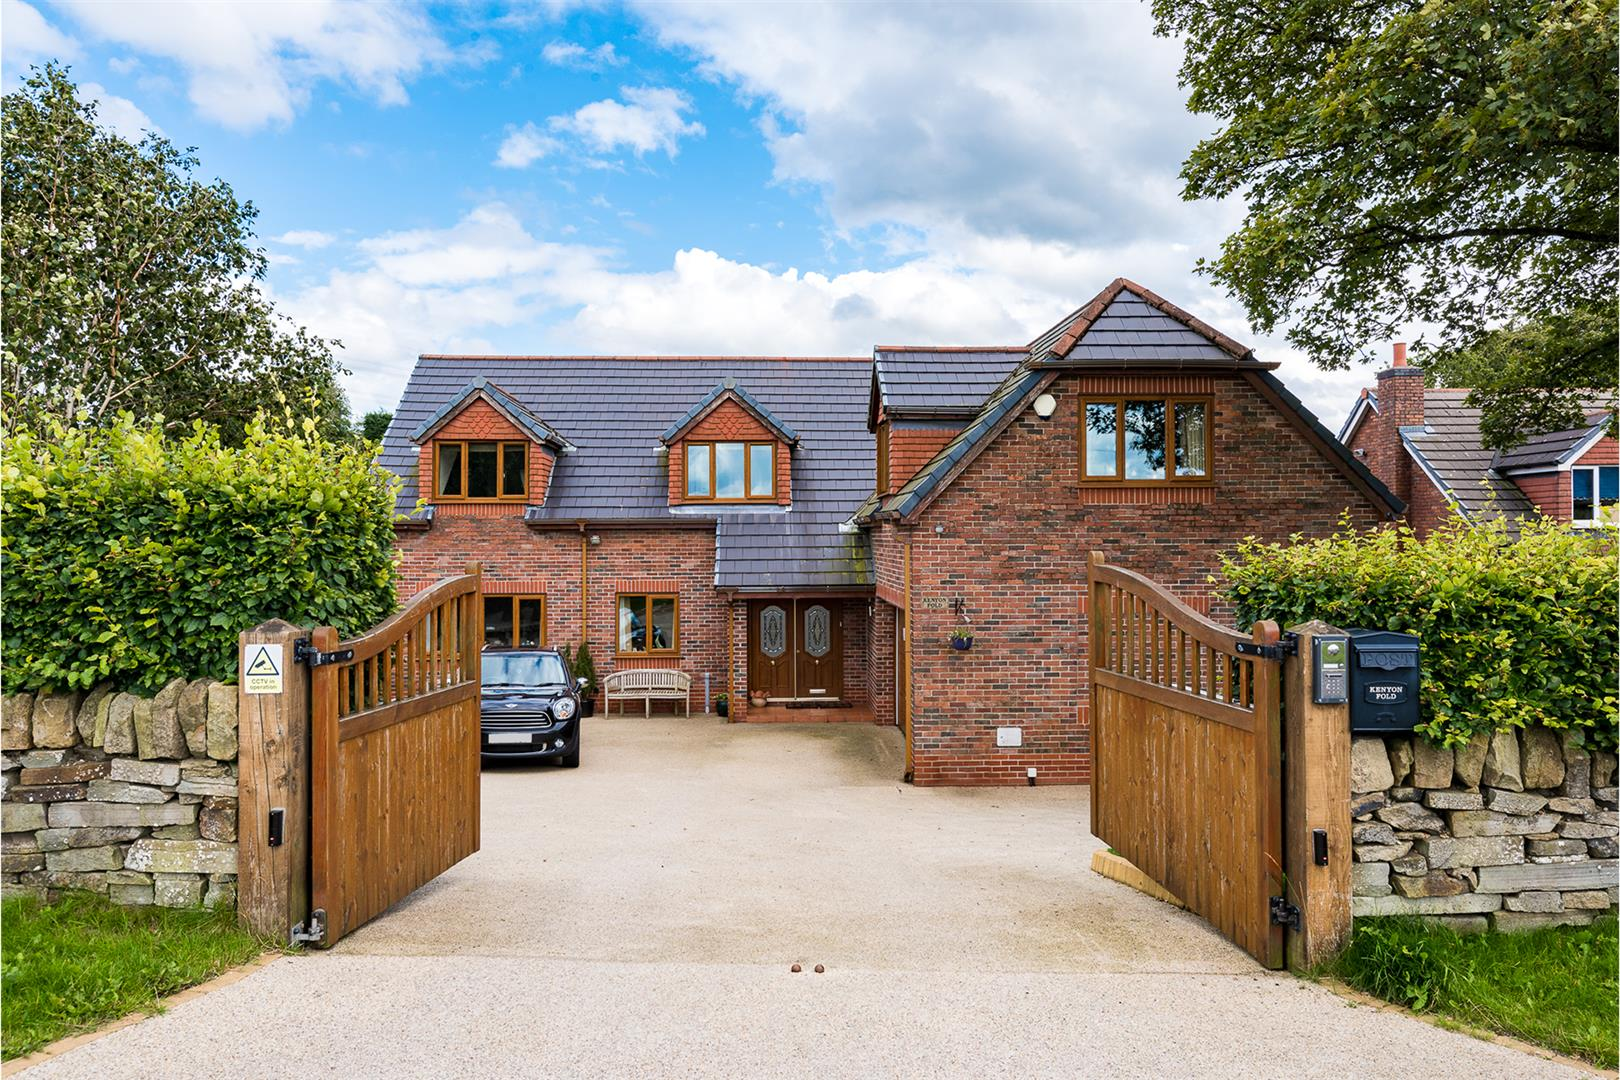 4 Bedroom Detached House Sale Agreed Image 0